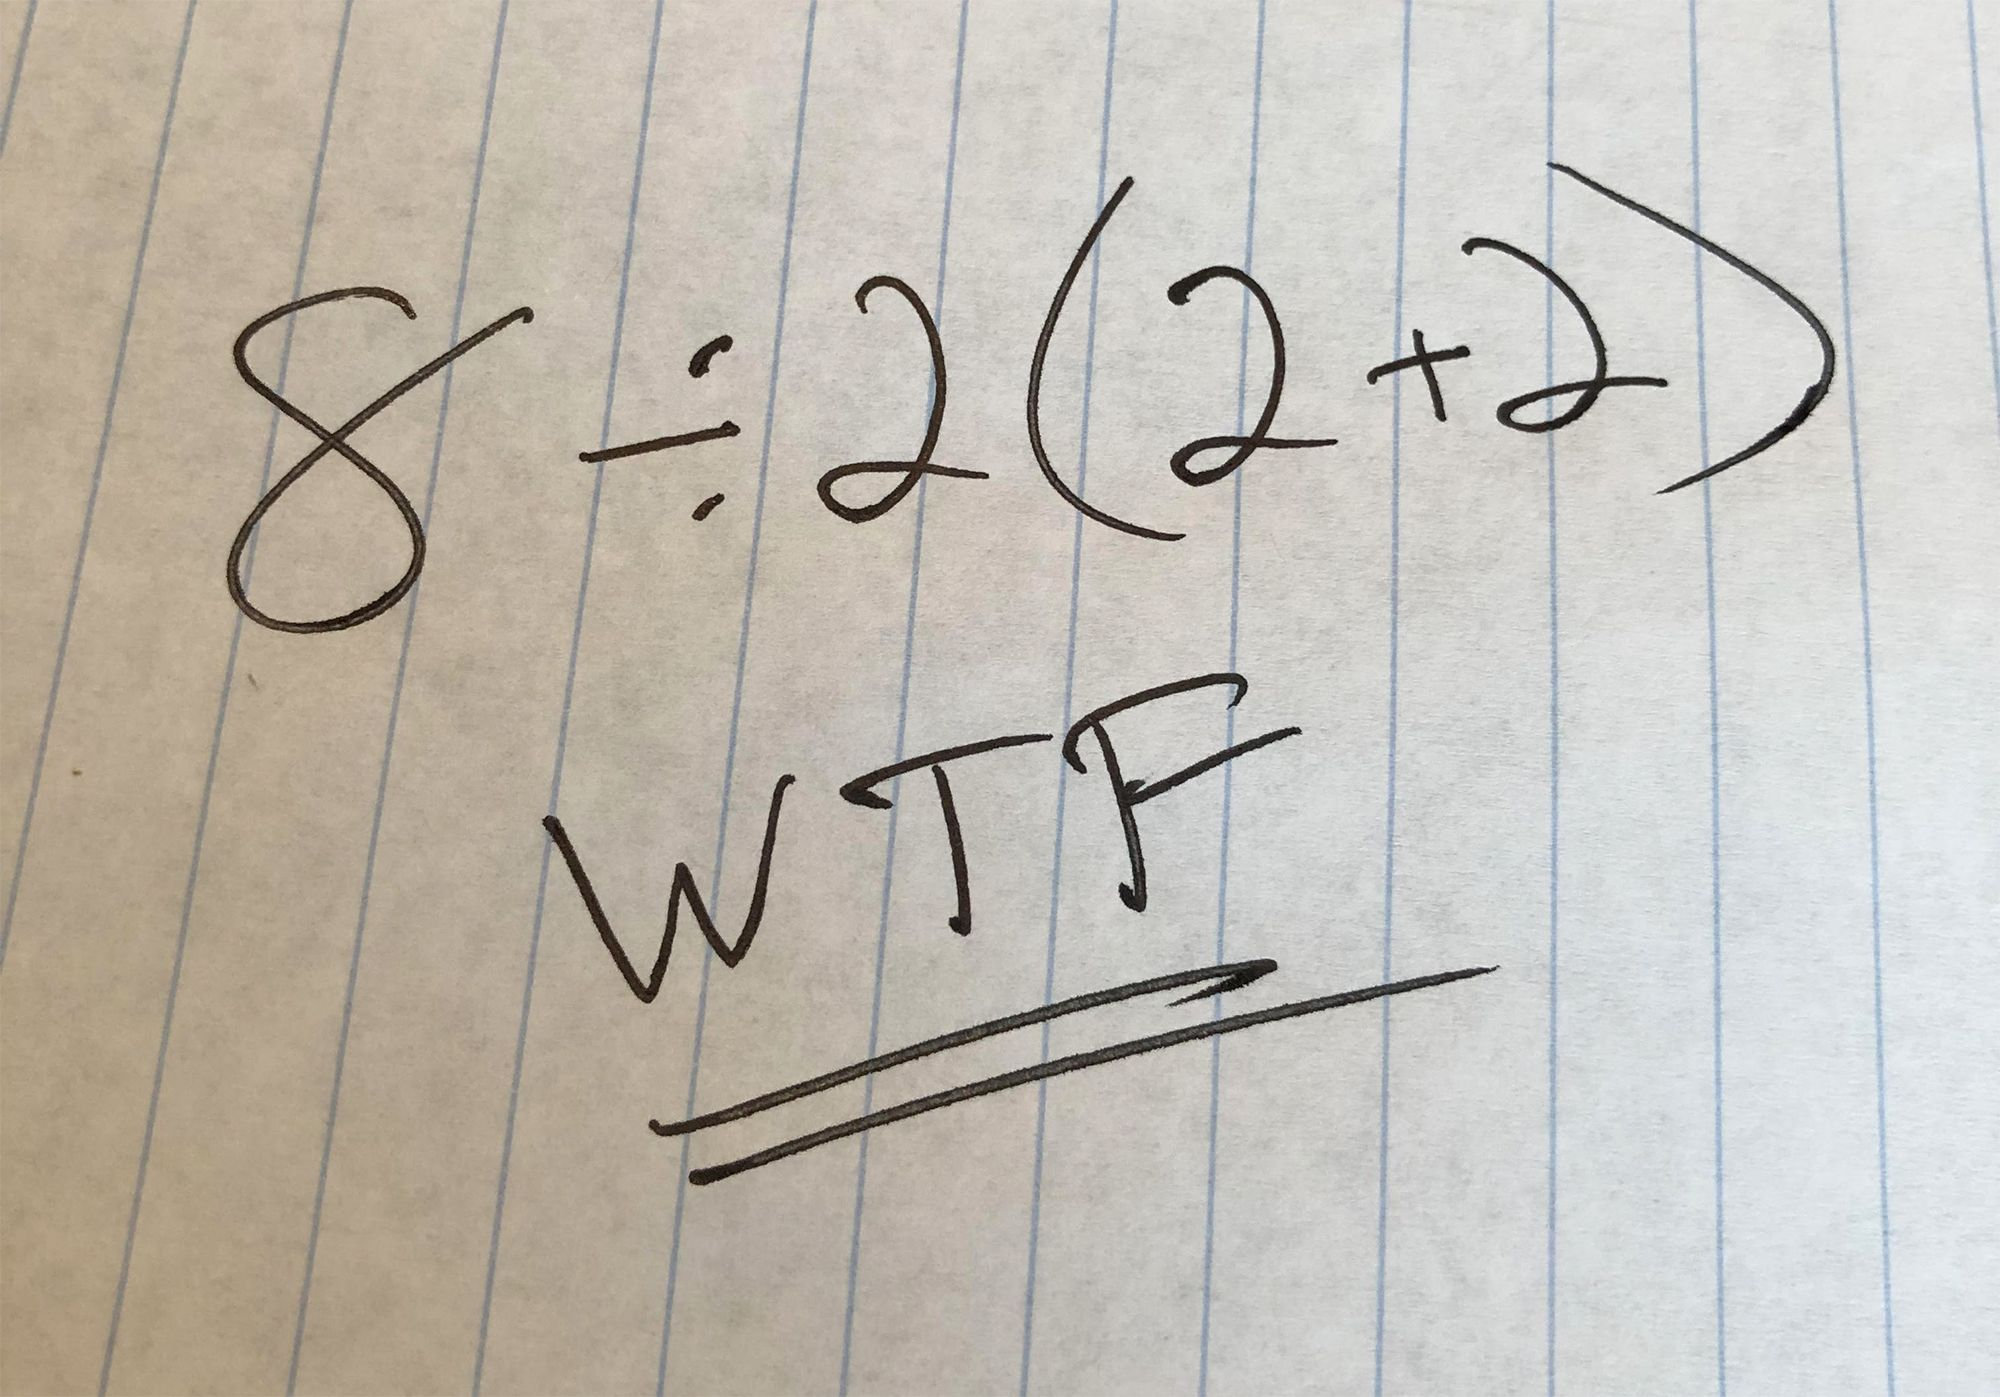 Crazy Math Equation That Equals 1